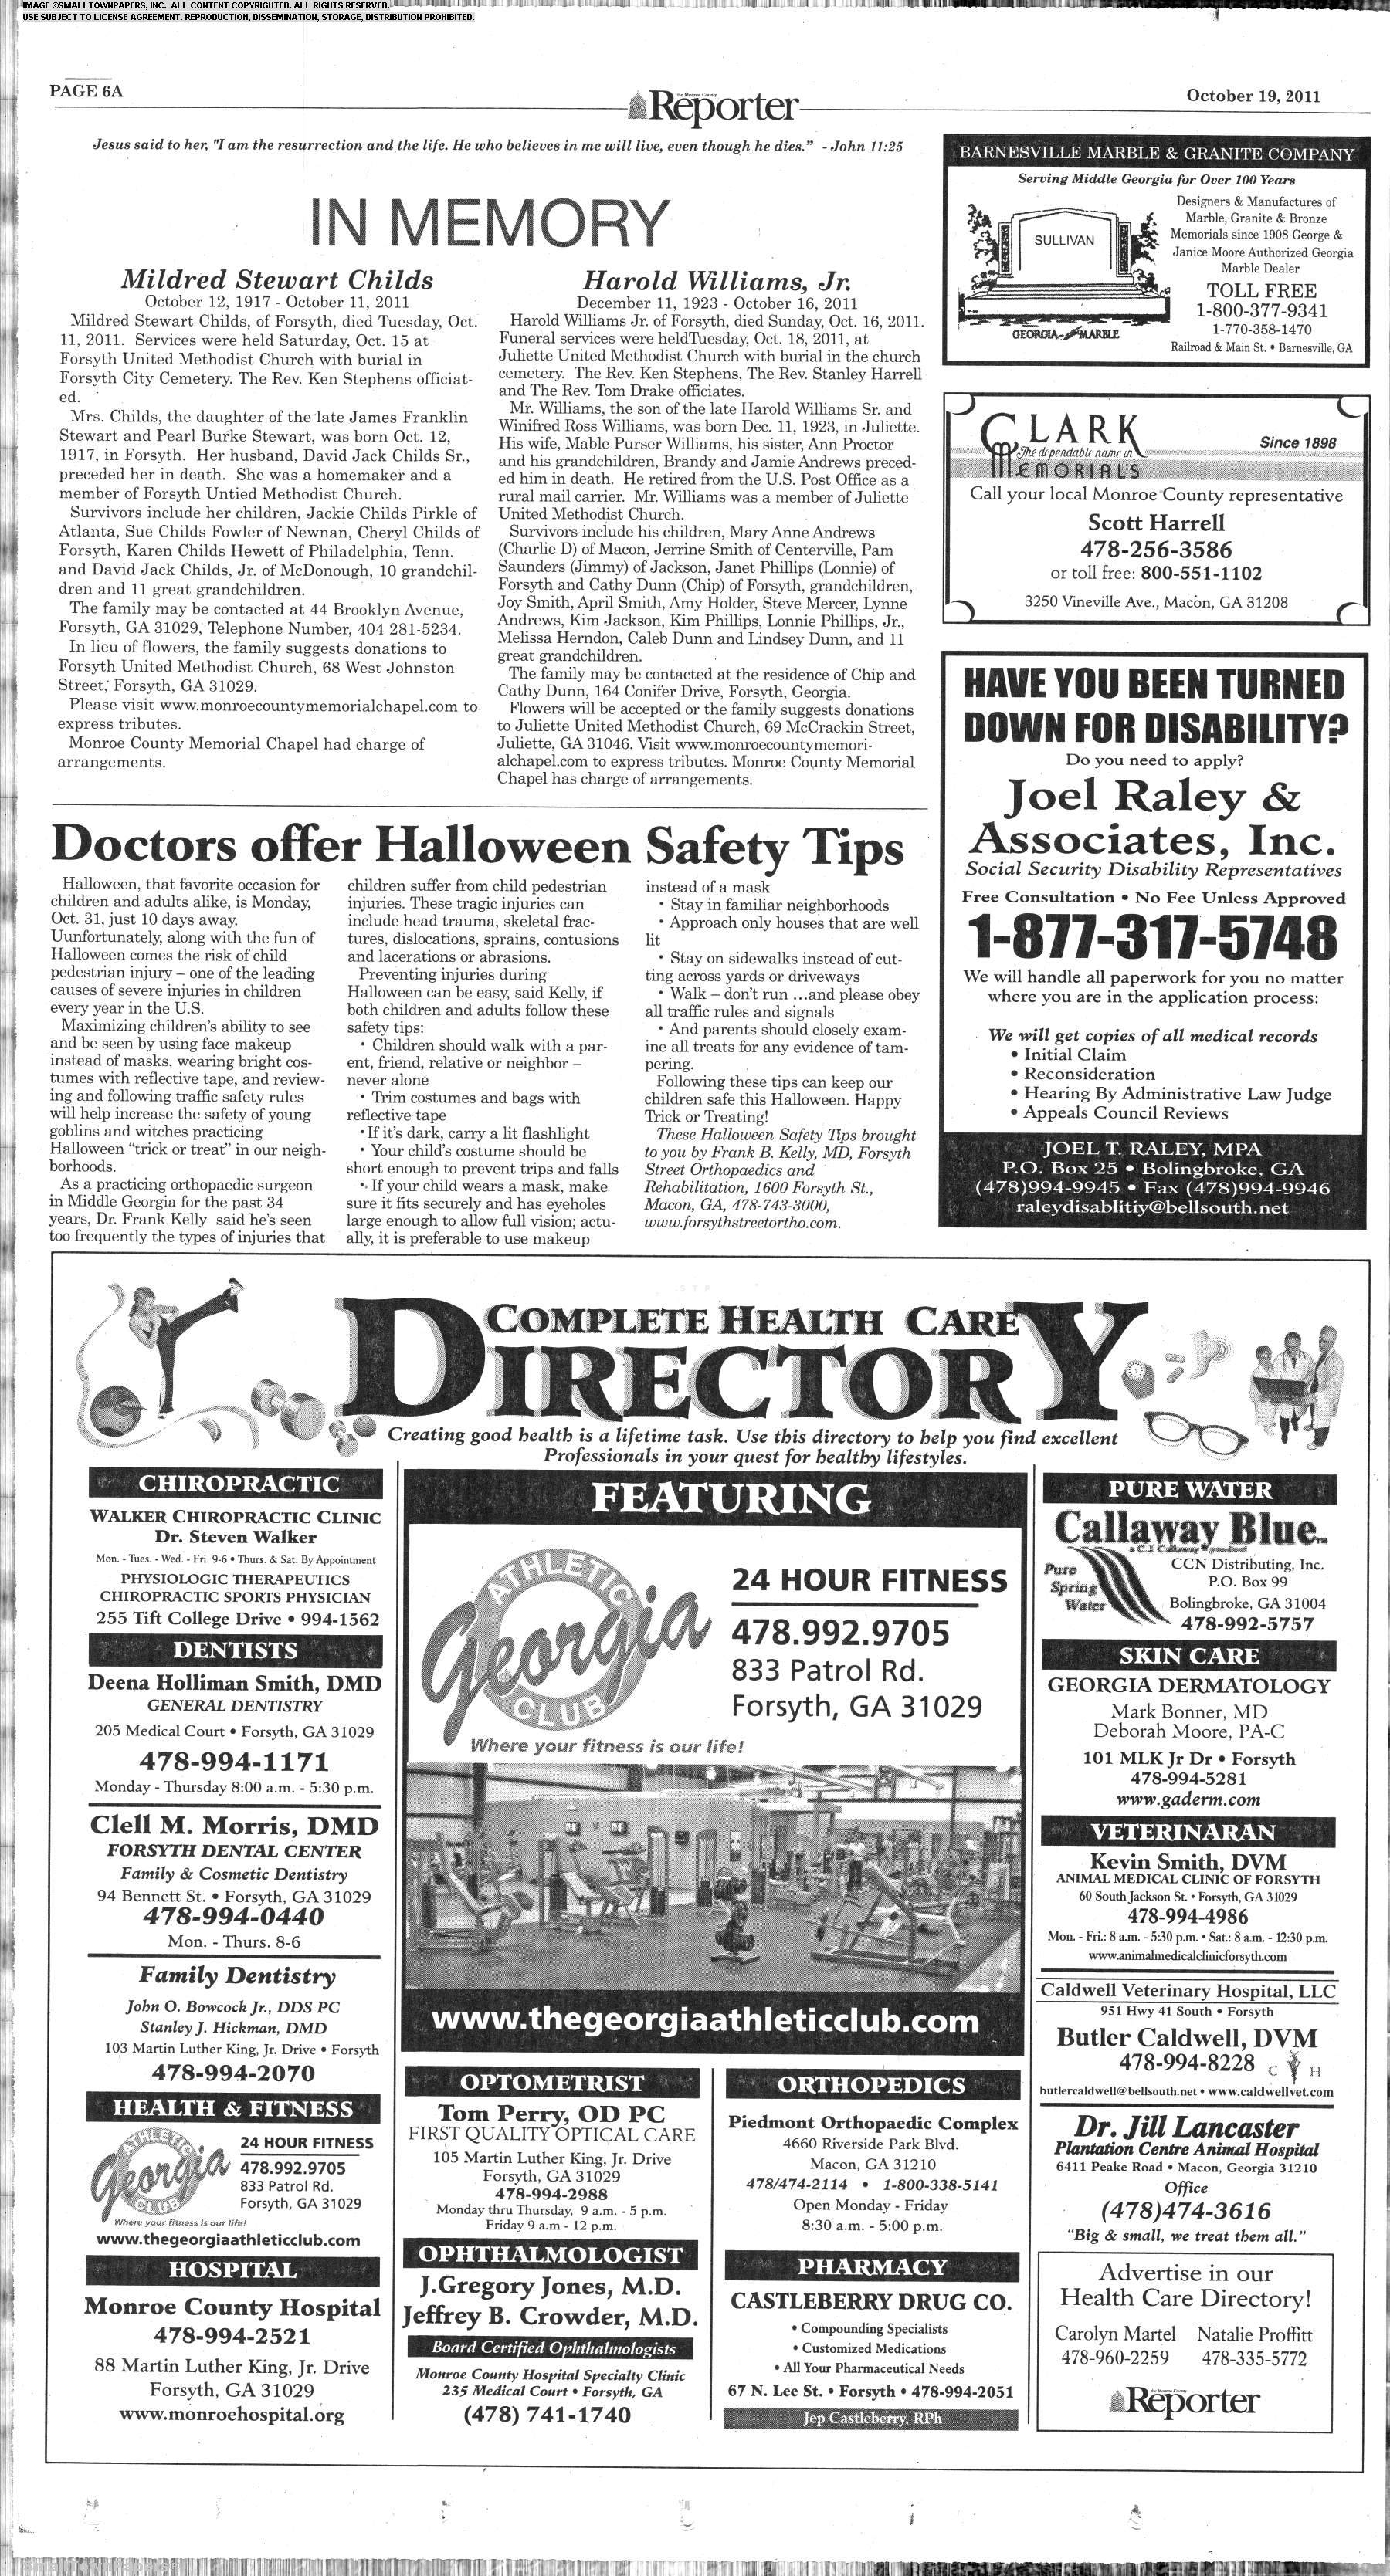 The Monroe County Reporter October 19, 2011: Page 6